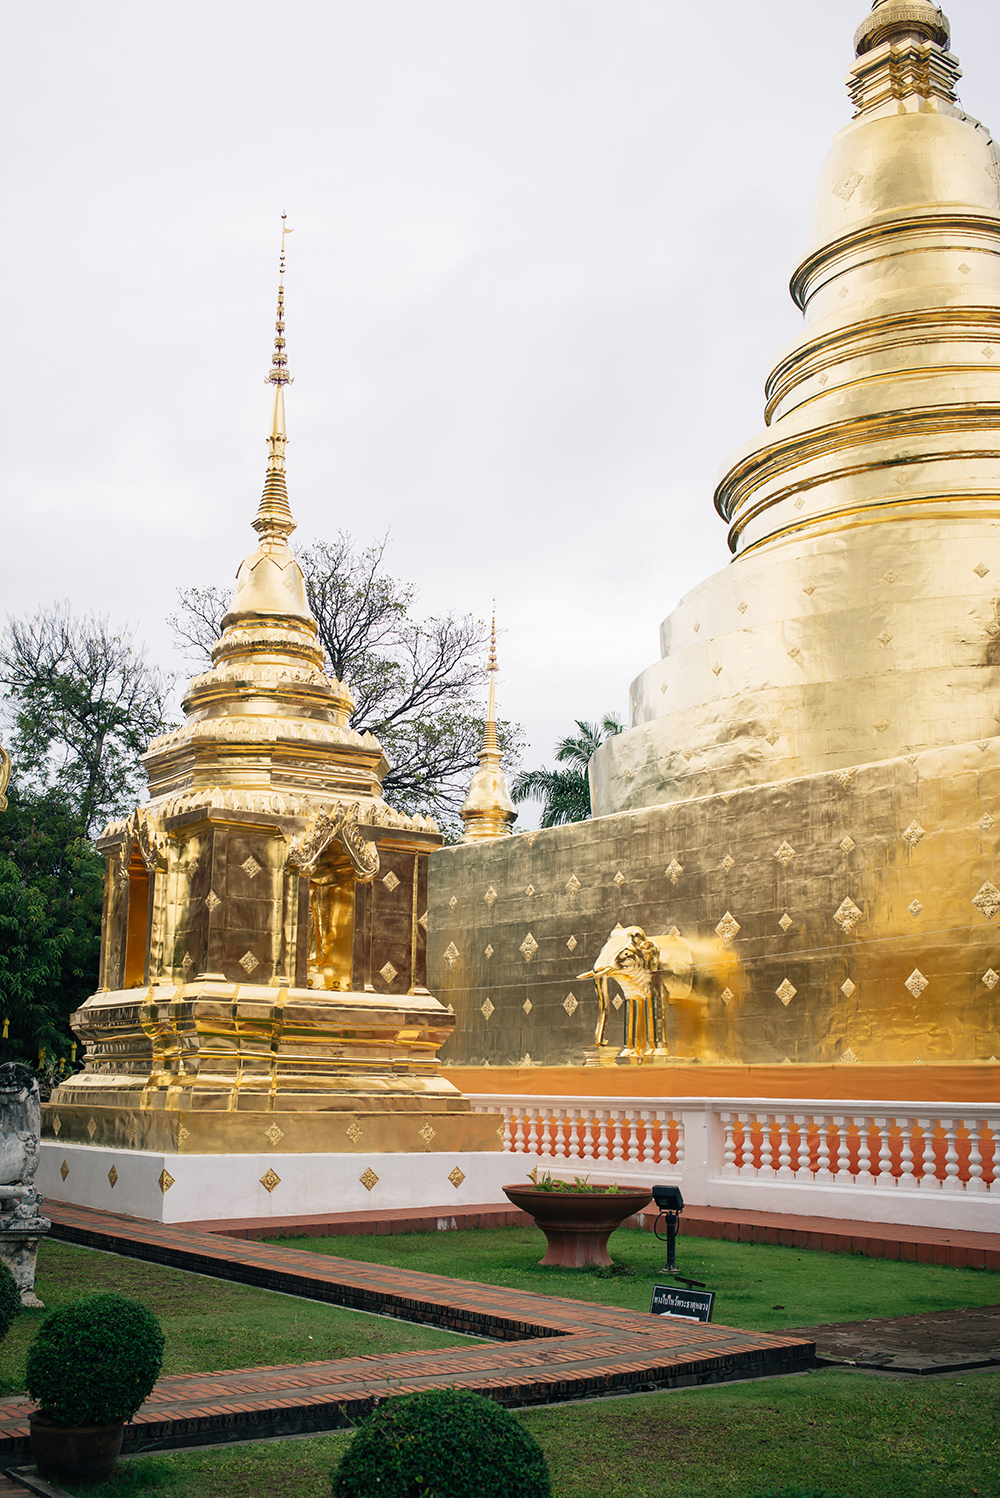 Wat Phra Singh golden temple Chiang Mai Thailand.